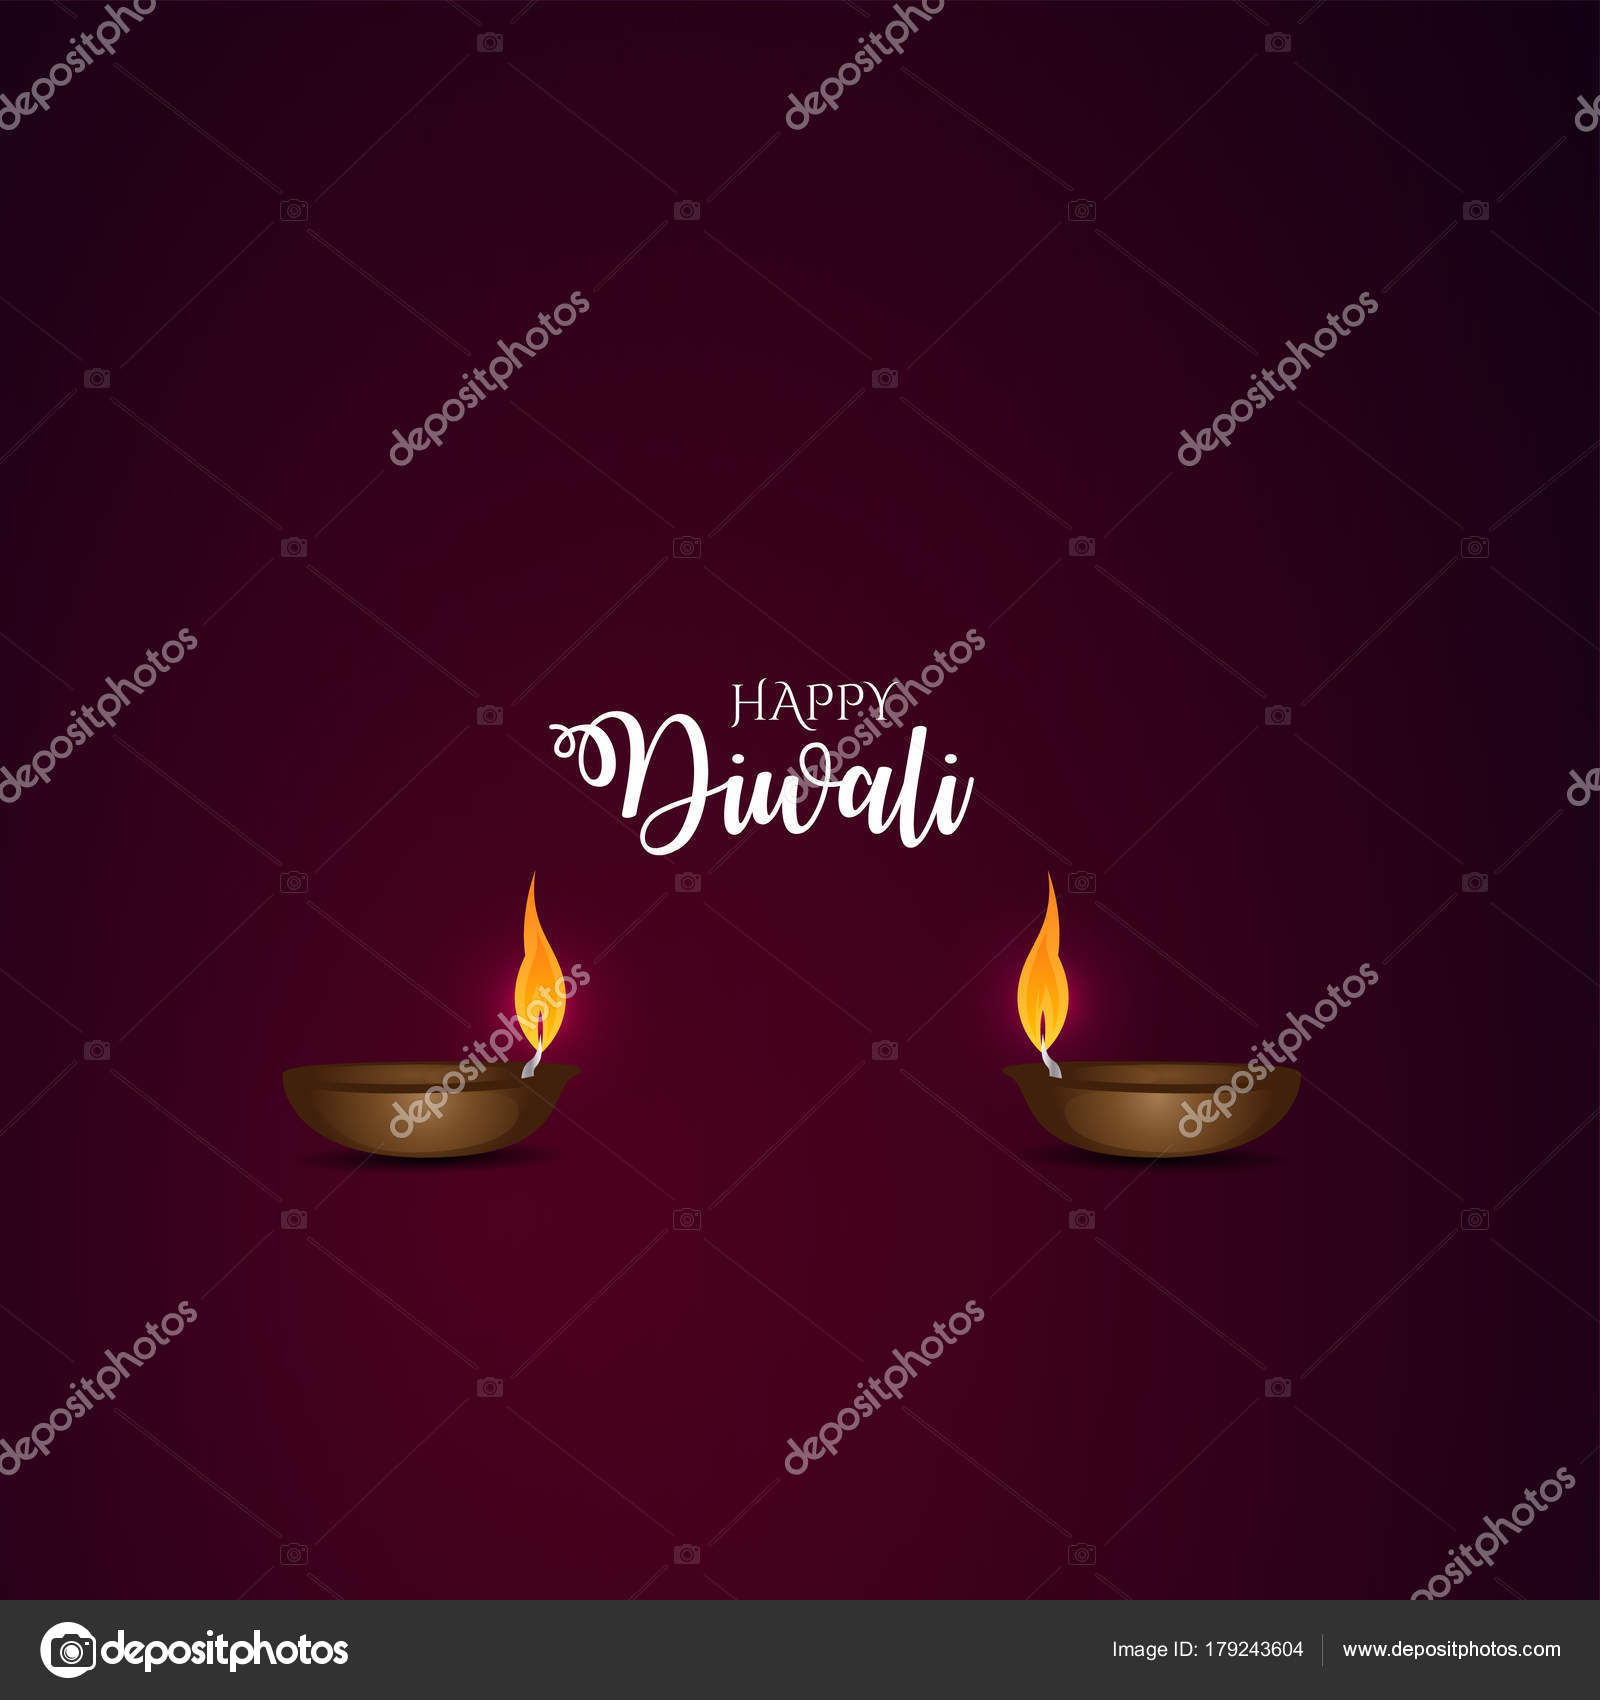 Happy Diwali Greeting Card Background Design Idea Stock Vector